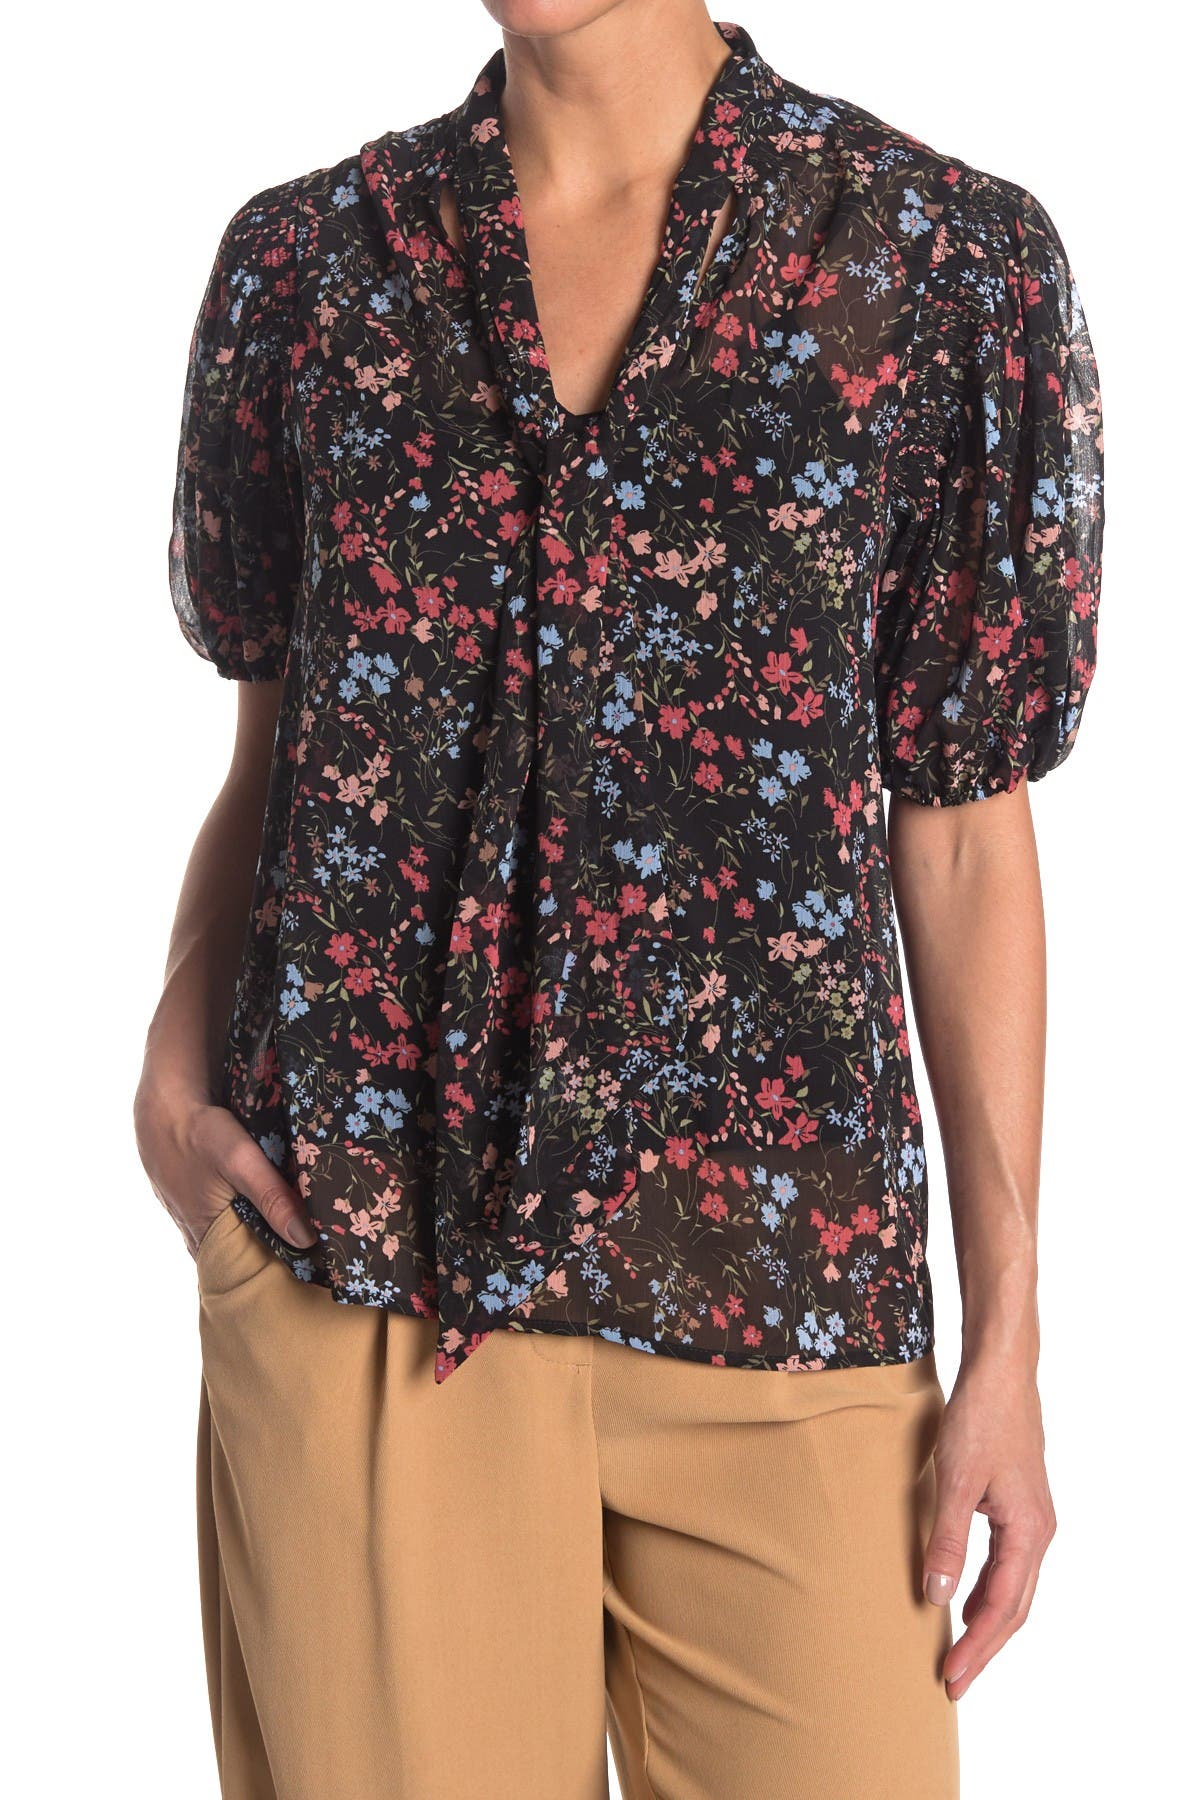 Image of Laundry By Shelli Segal Tie Neck Floral Blouse